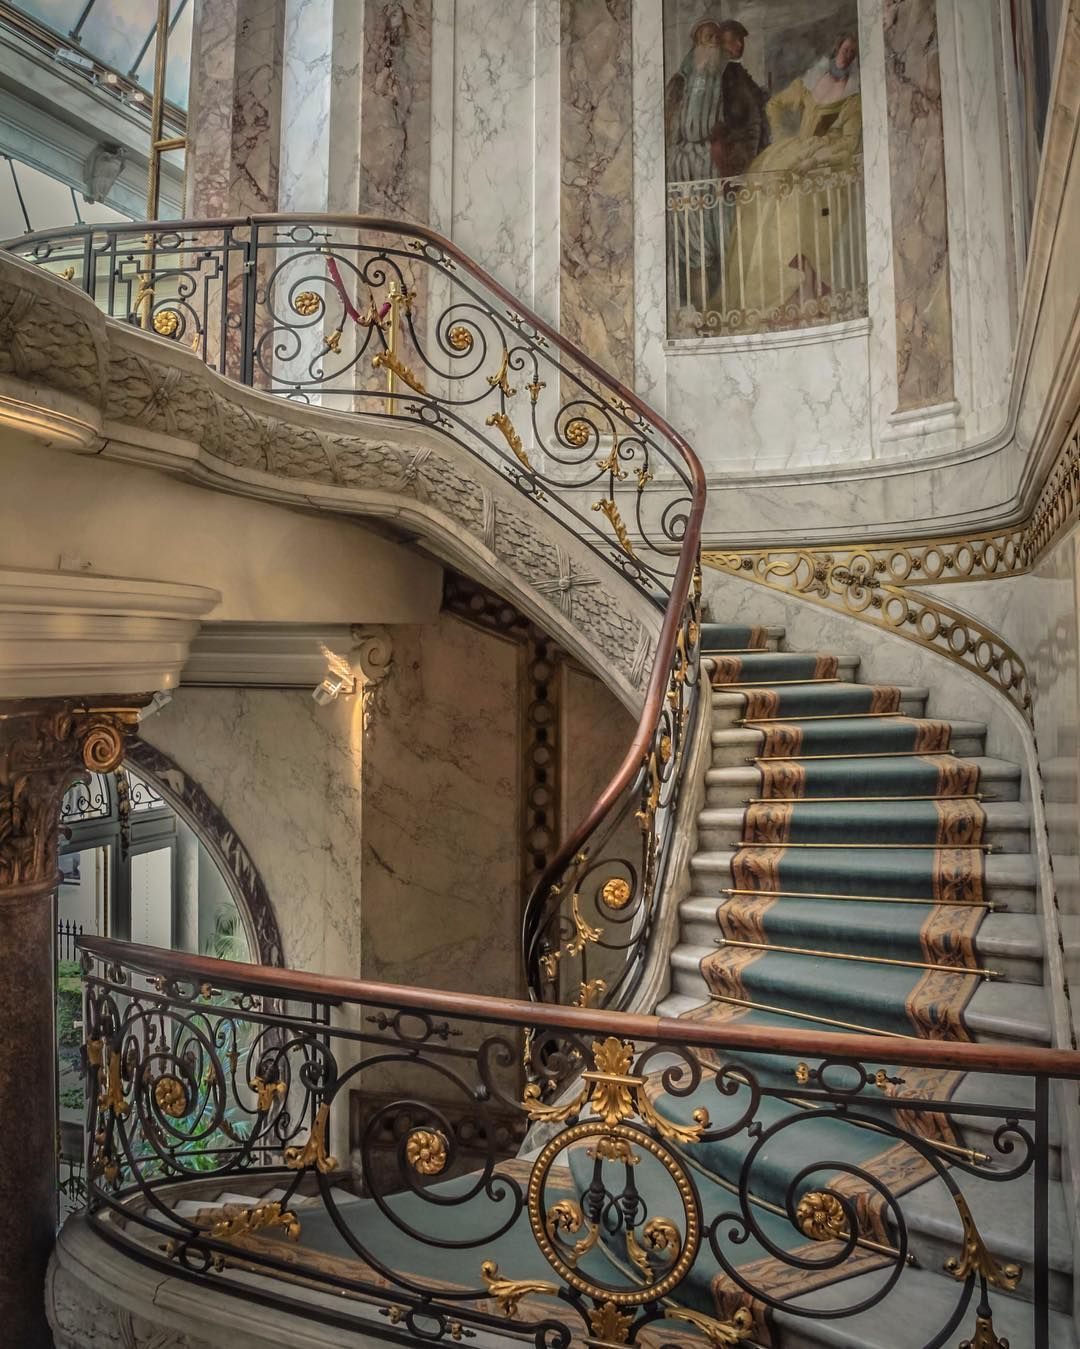 Could there be a more beautiful museum? #museeandrejacquemart #paris #kings_hdr #kings_luxury #loves_france_ #france_focus_on #france #parigi #loves_paris #museum #stairs #hello_france #luxury #instaparis #parisjetaime #parisphoto